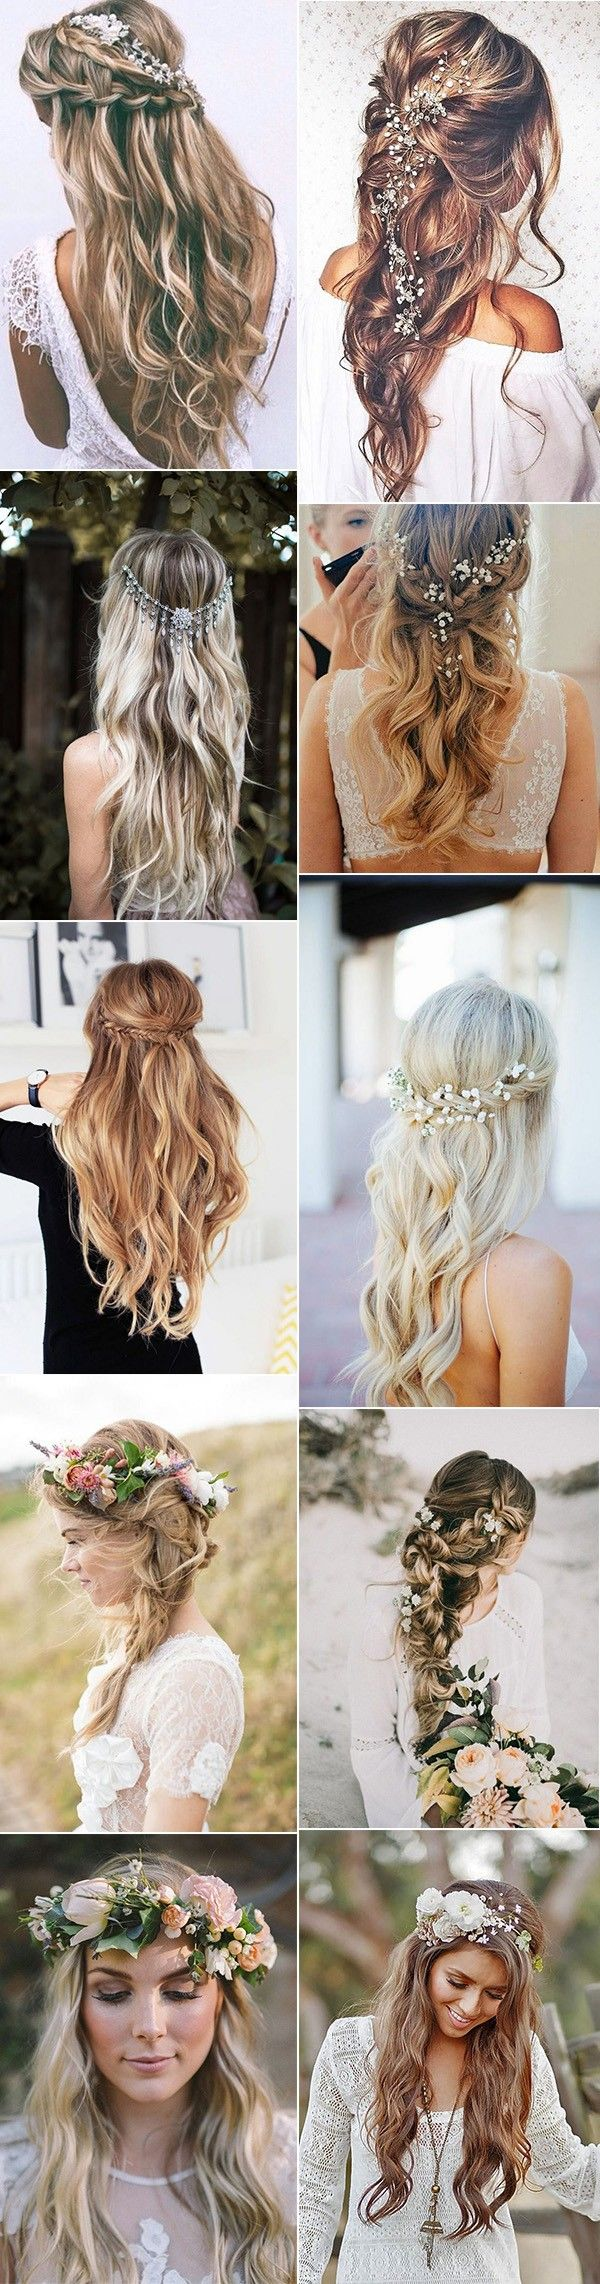 20 Boho Chic Wedding Hairstyles for Your Big Day – Shea Staton